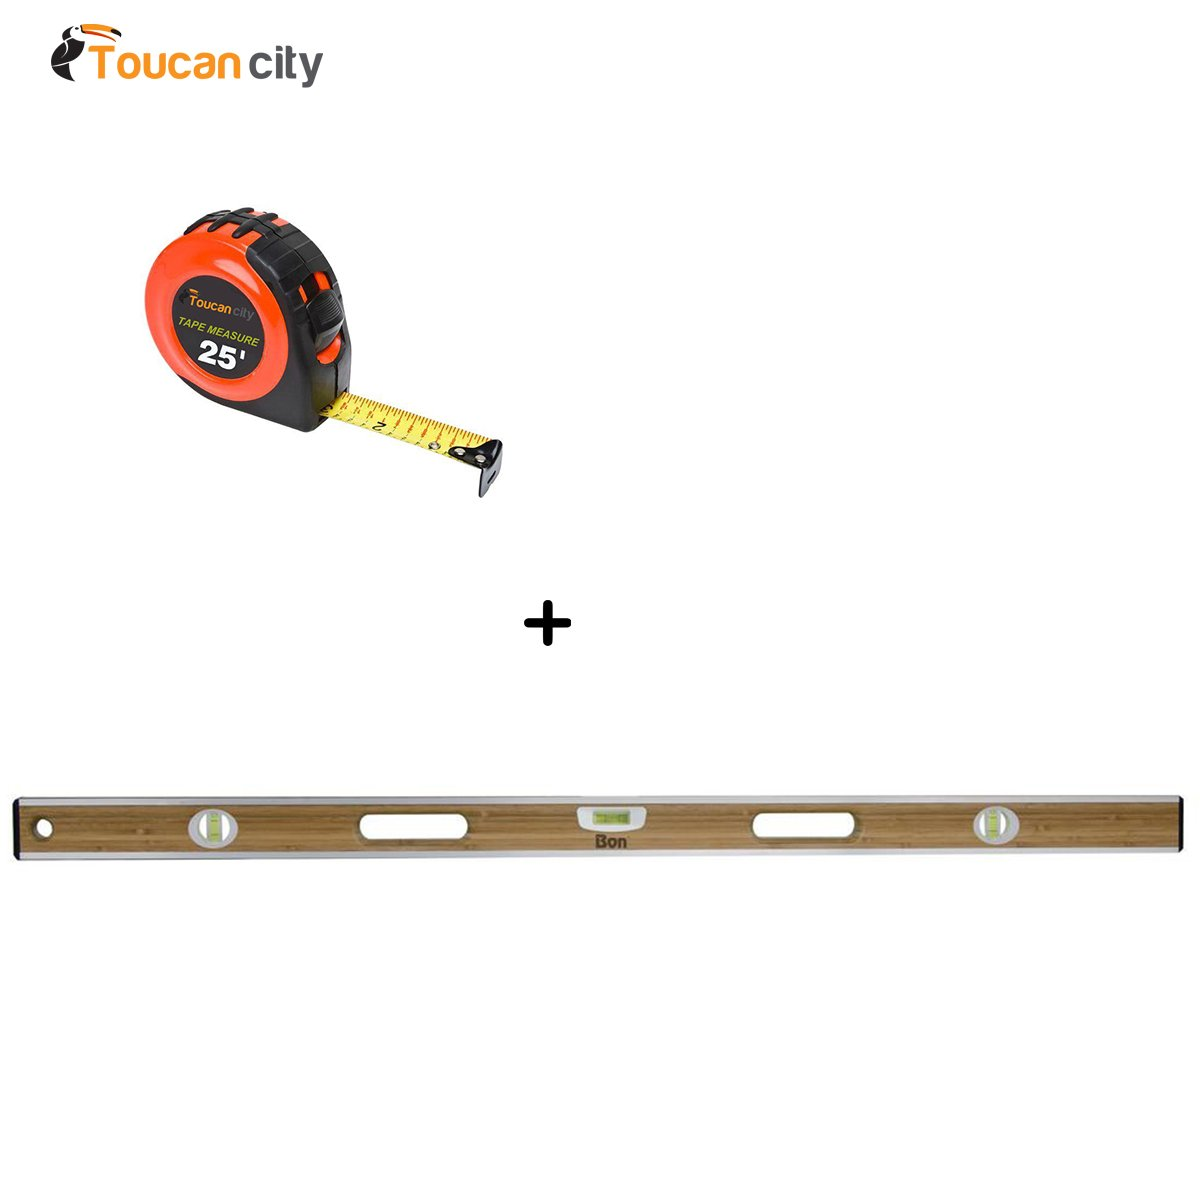 Bon 48 in. Aluminum Bound Laminated Bamboo Level 34-217 and Toucan City Tape measure